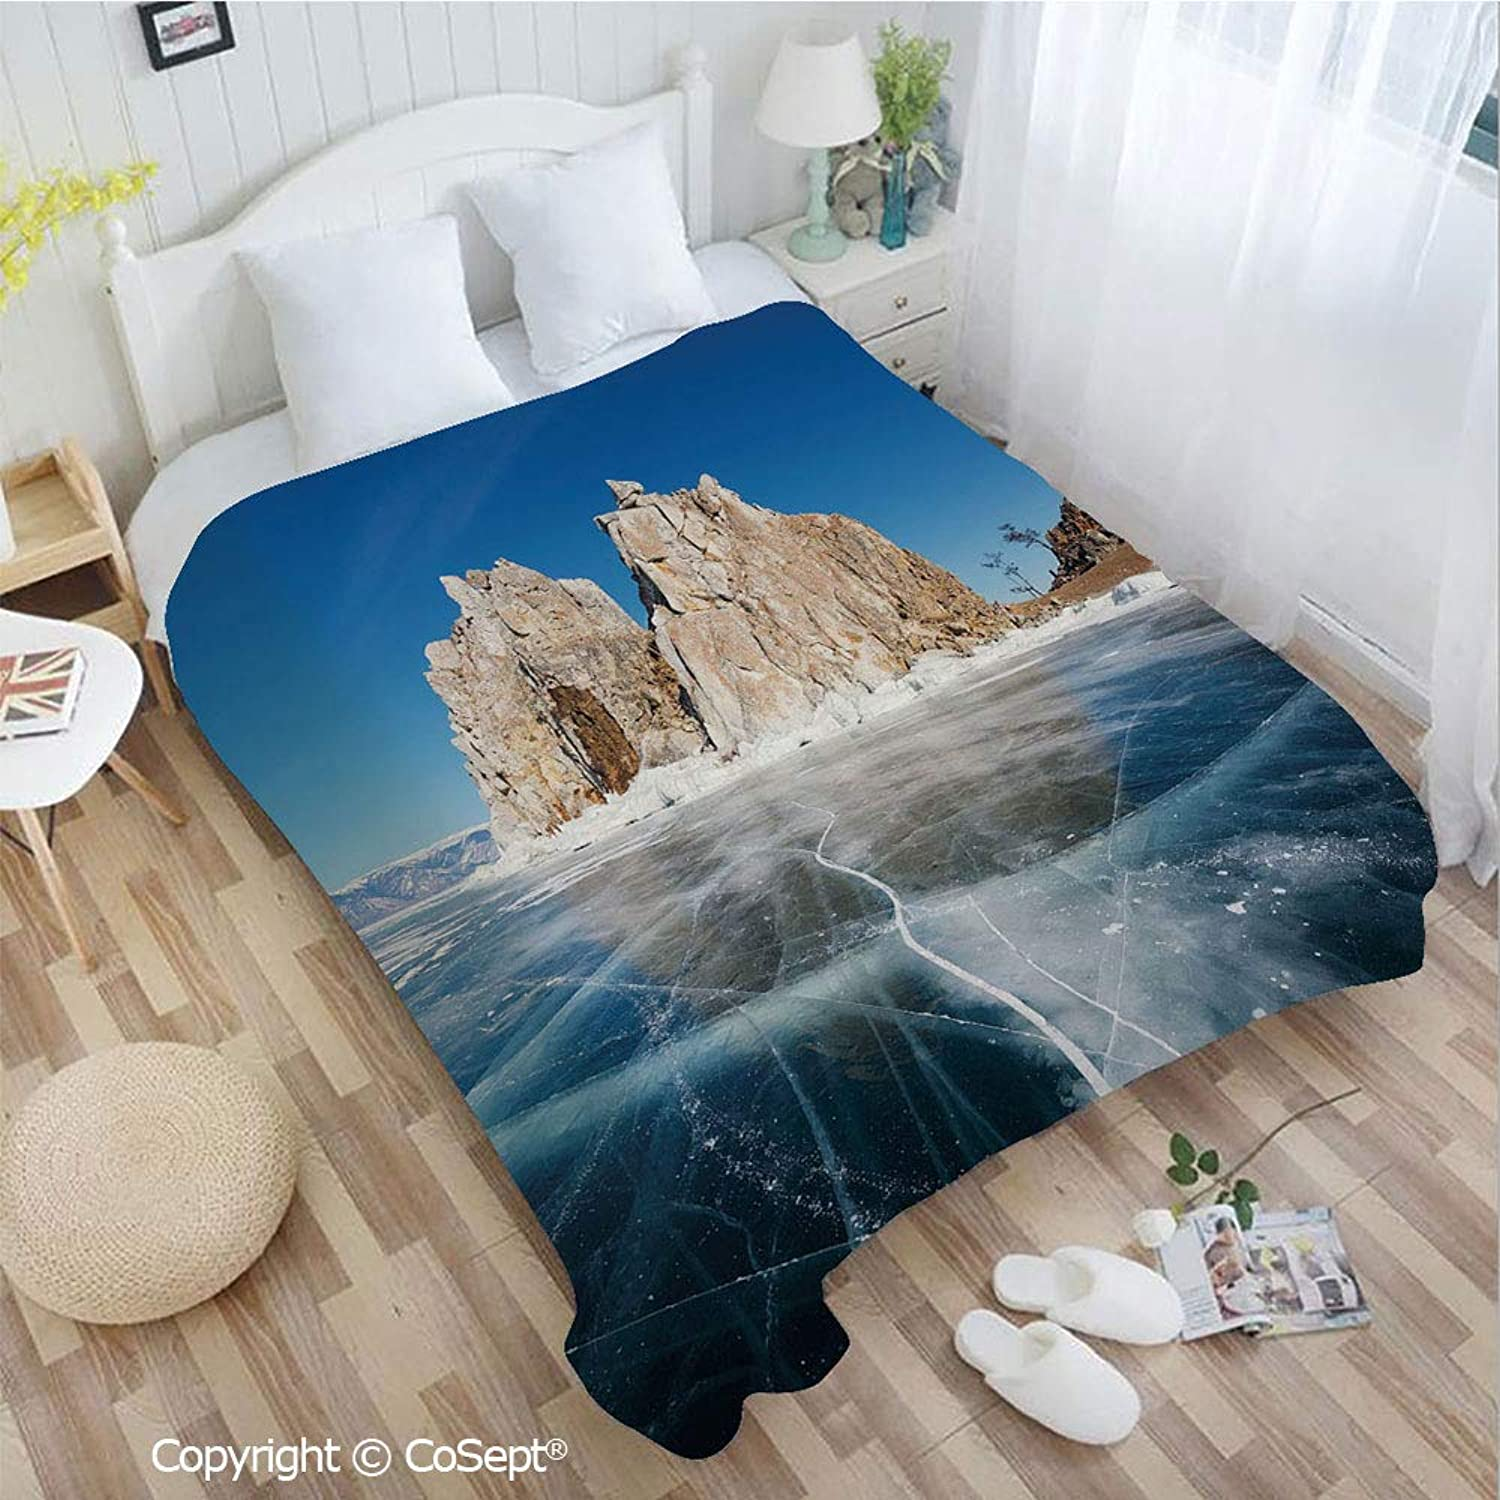 PUTIEN Luxury Flannel Blanket,Frozen Lake Baikal in Siberia with Icicles Scenic Nature Surface Structure Cold Climate Decorative,All Season Use(72.83  x 78.74 ),